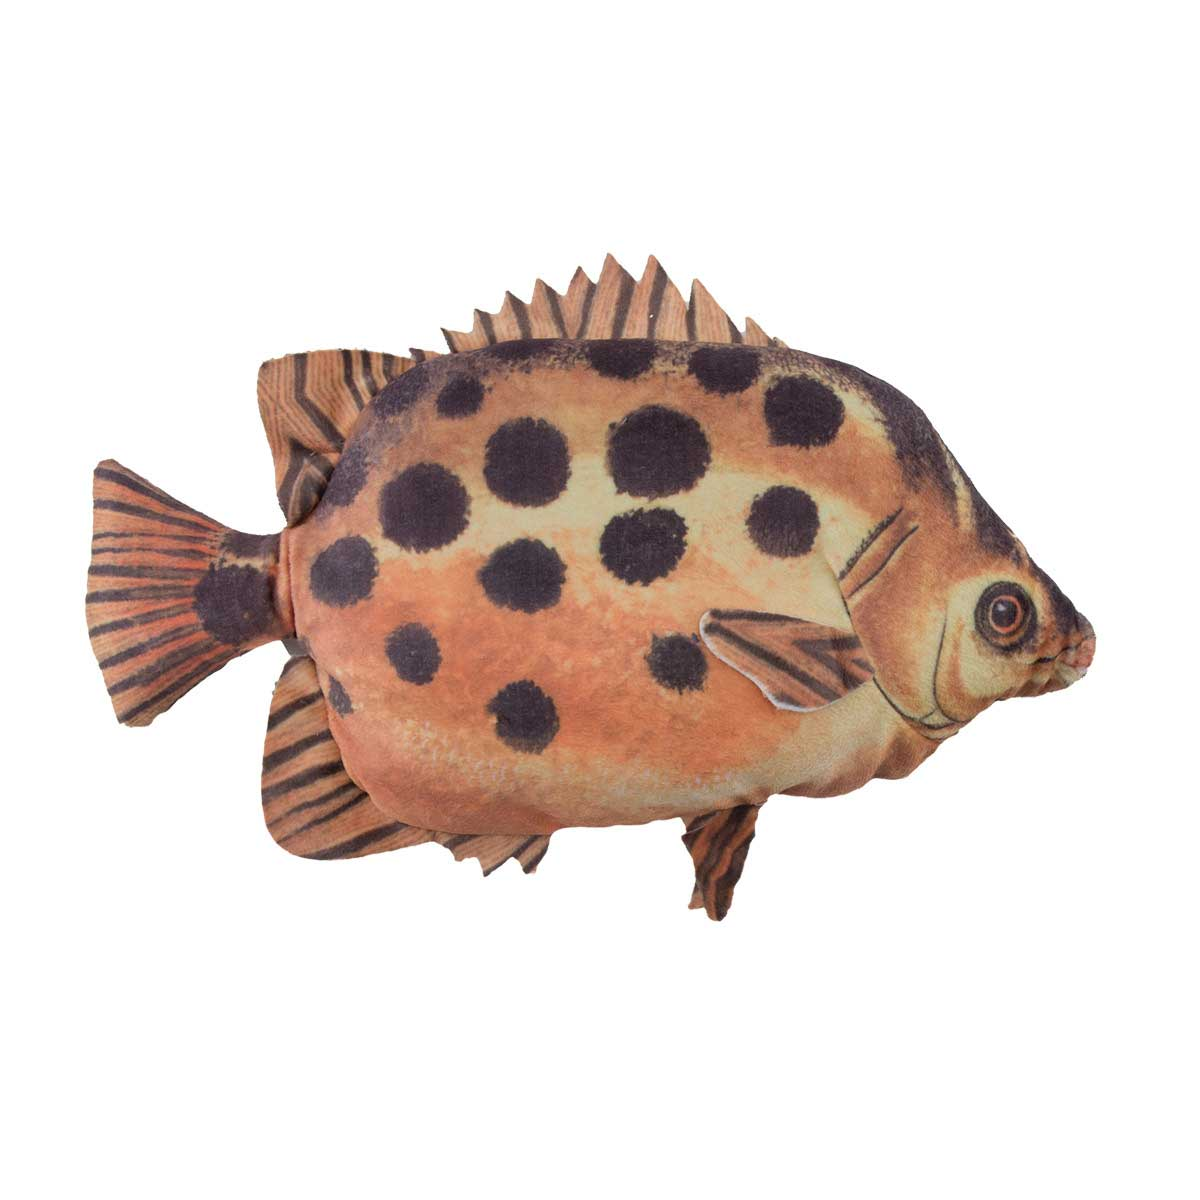 Dawgeee Toy Spotted Fish - 12 inch dog toys